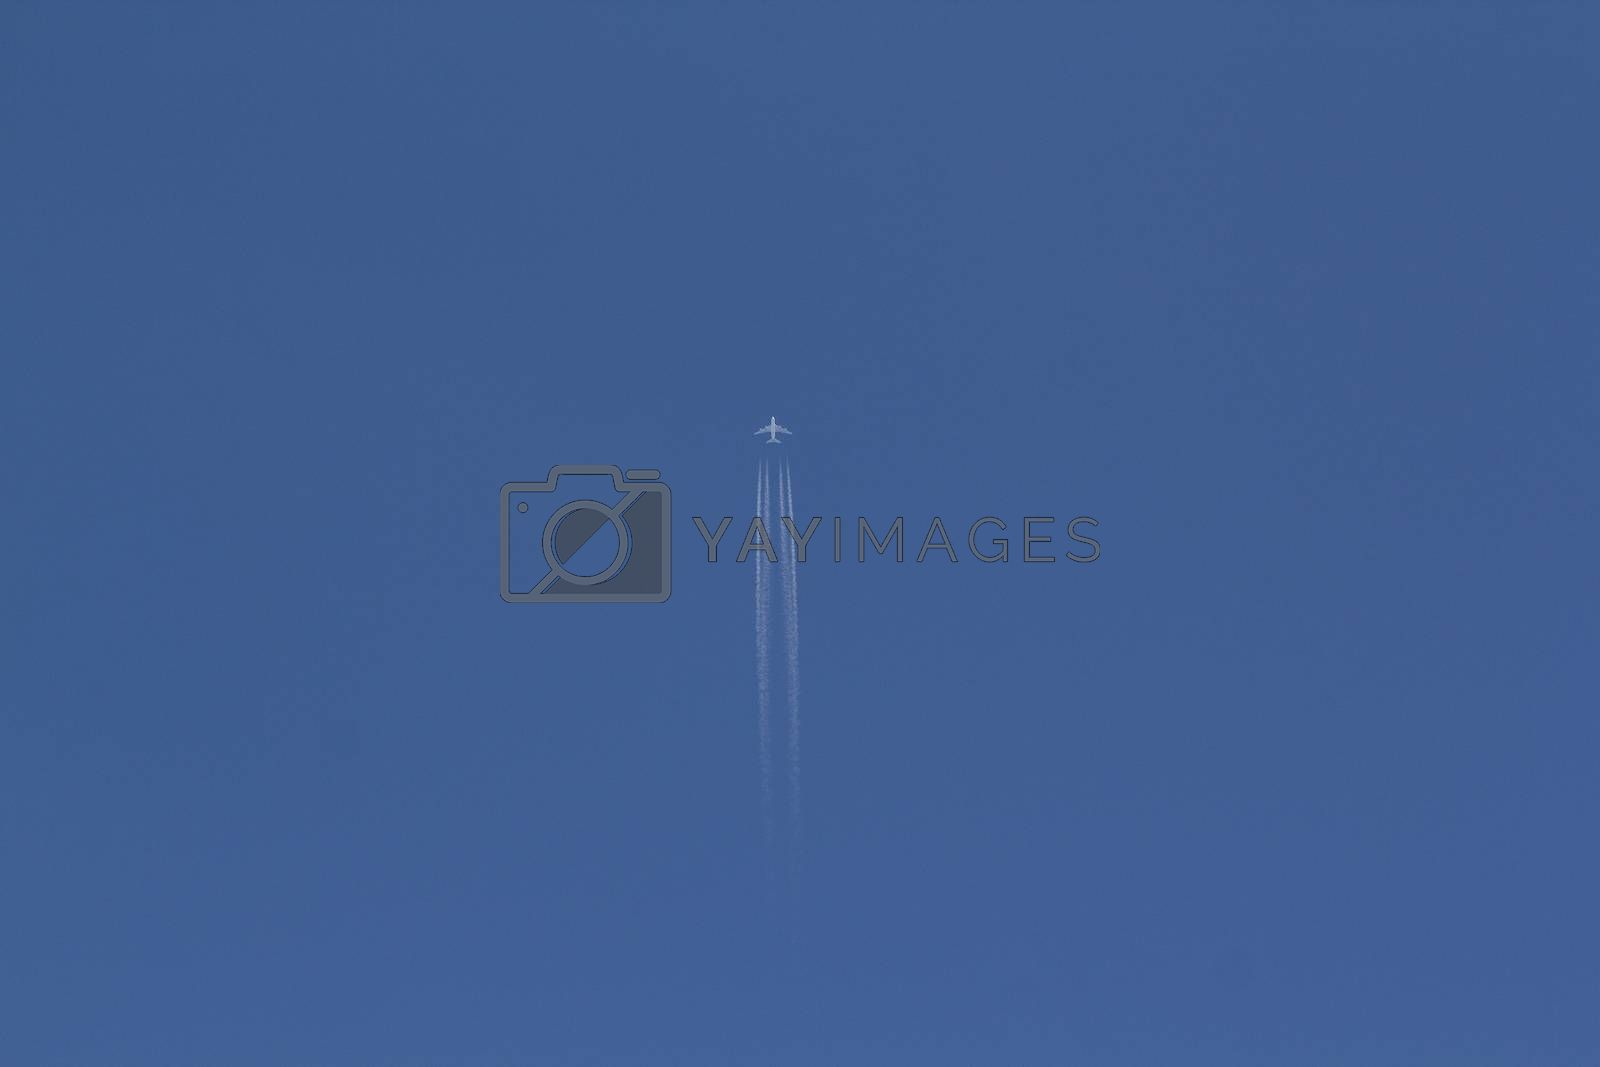 A jet plane leaving a white vapour trail in a clear blue sky